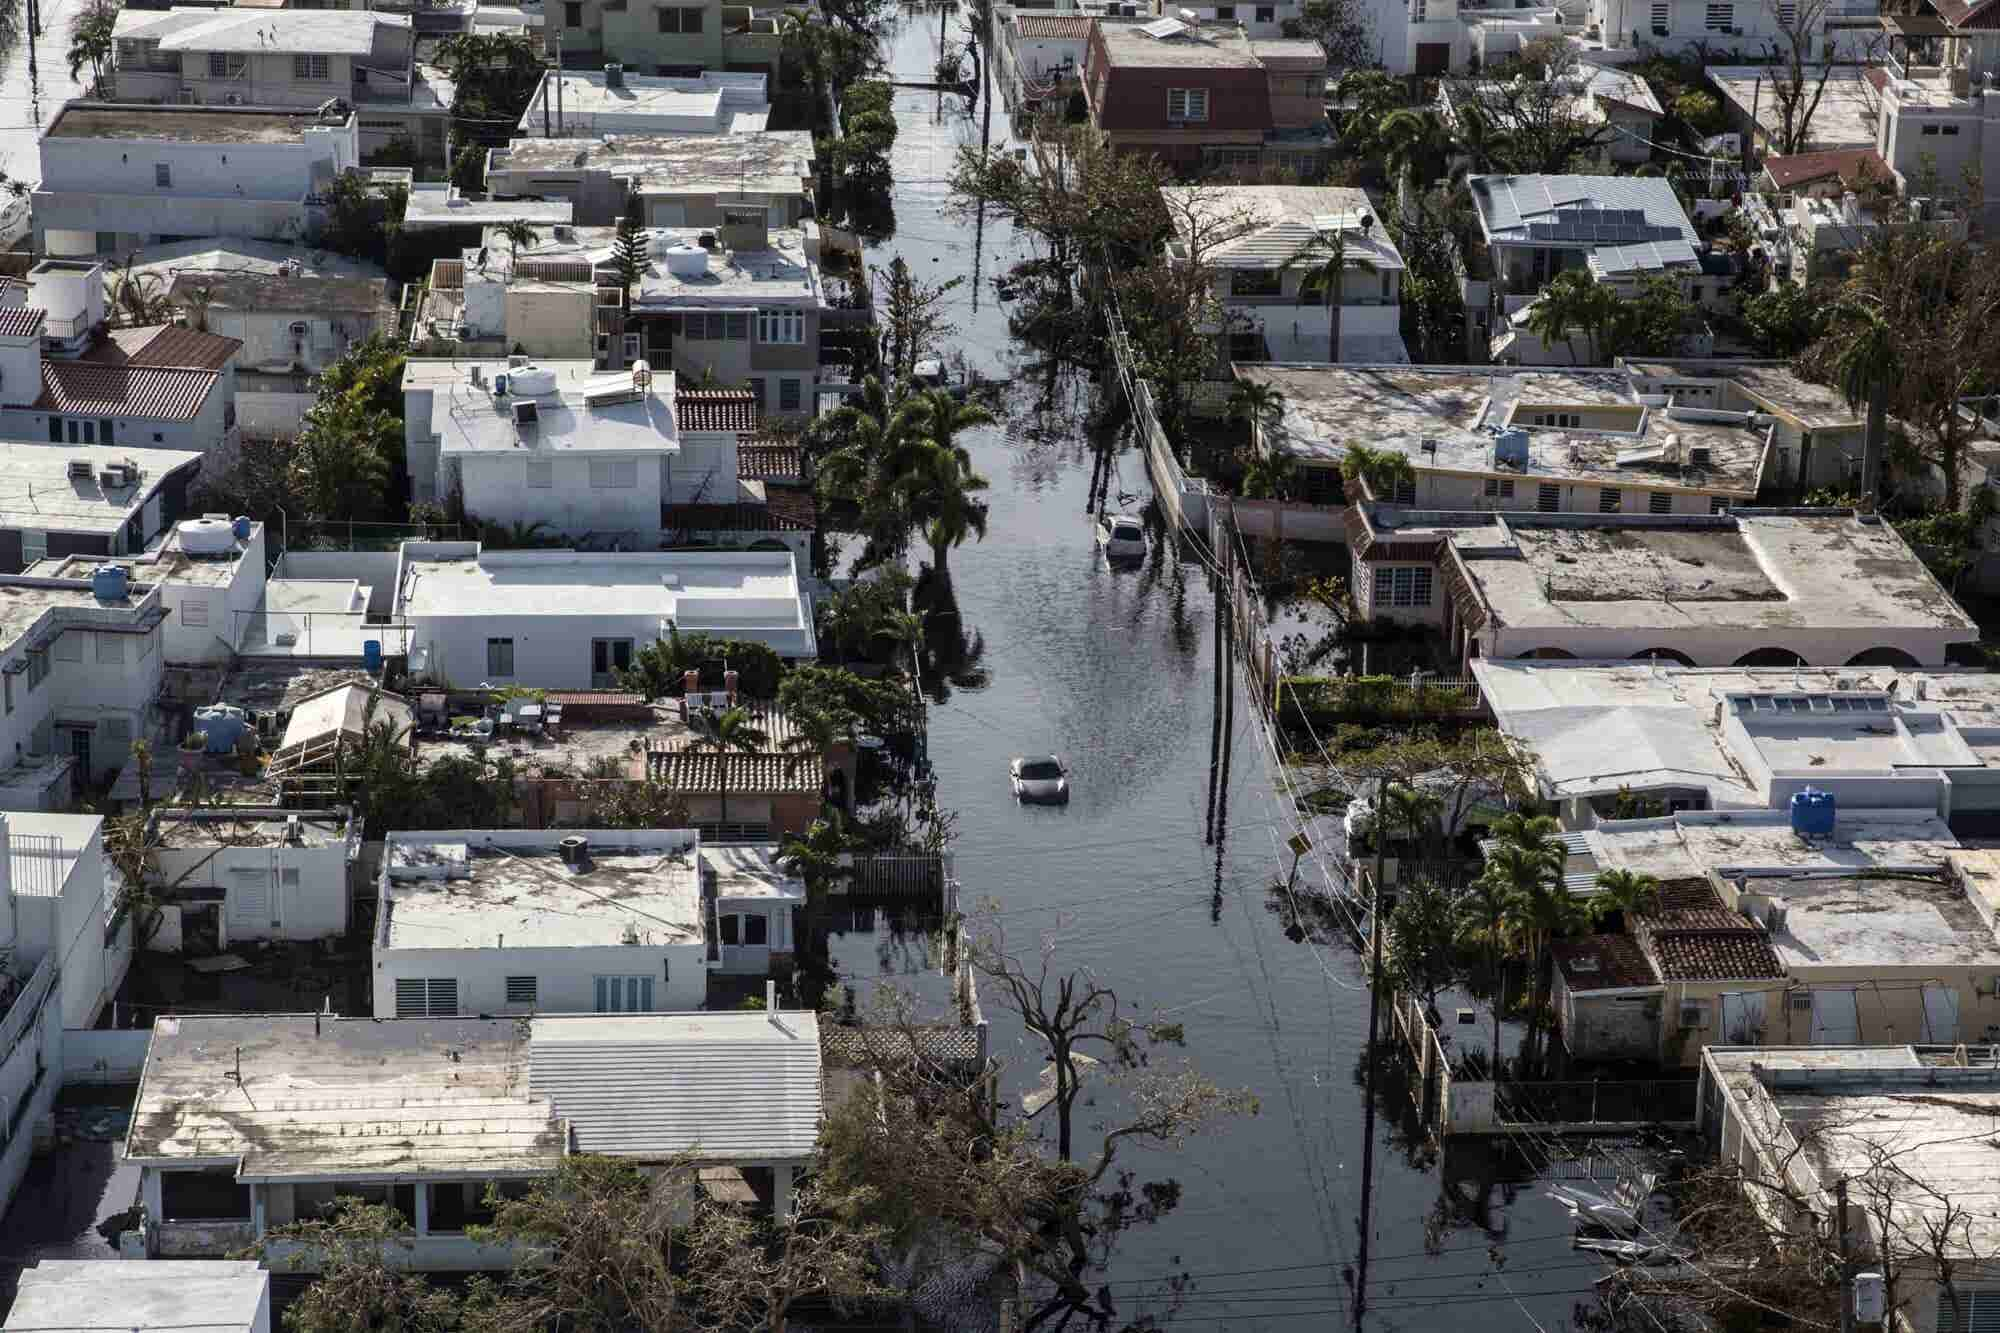 How Our Growing Tech Company Stayed Open During Hurricane María